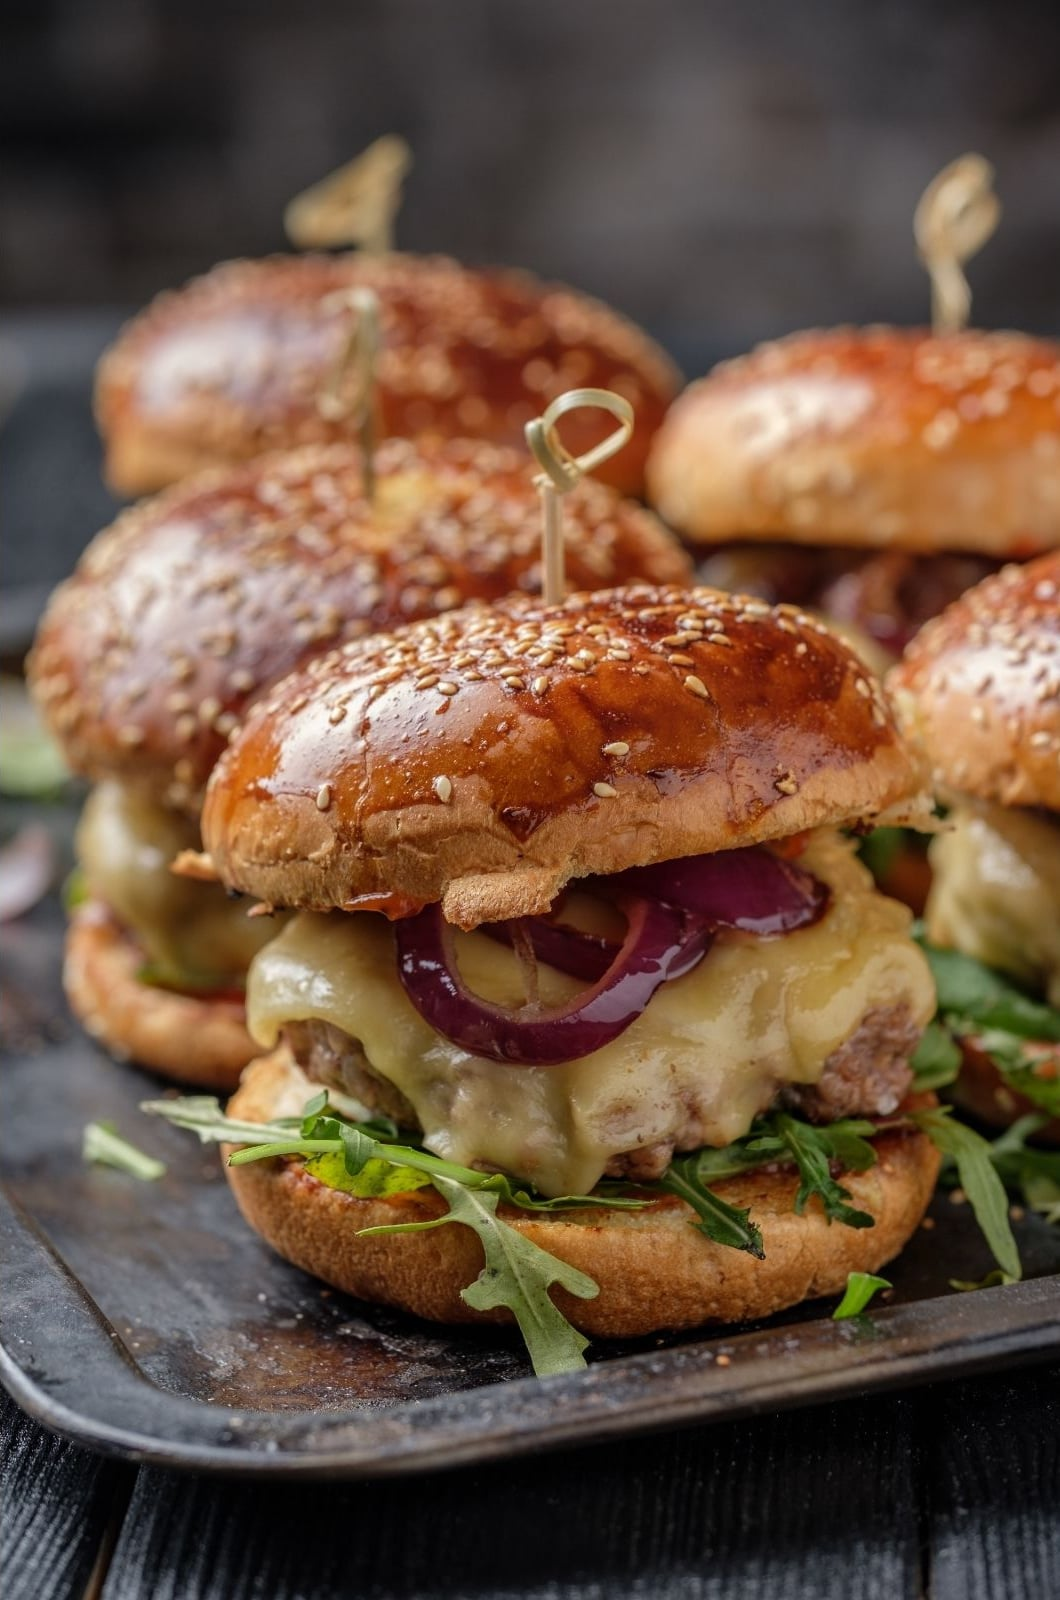 French onion hamburgers with melted cheese, red onions and arugula